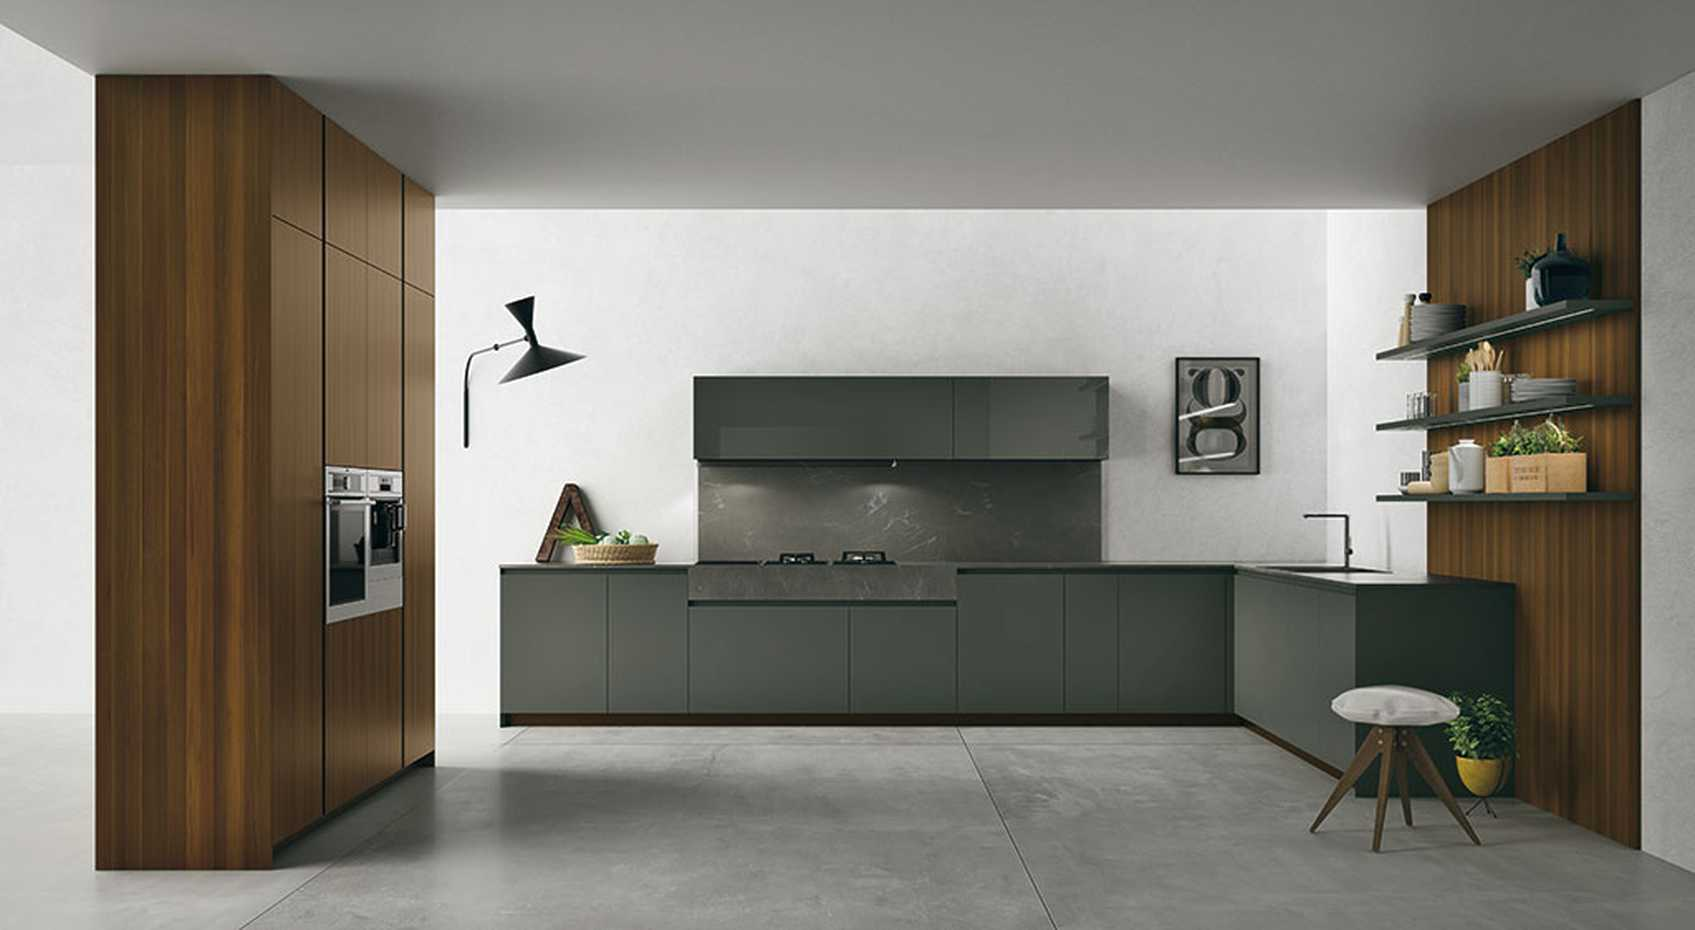 Materia by Doimo Cucine product image 2